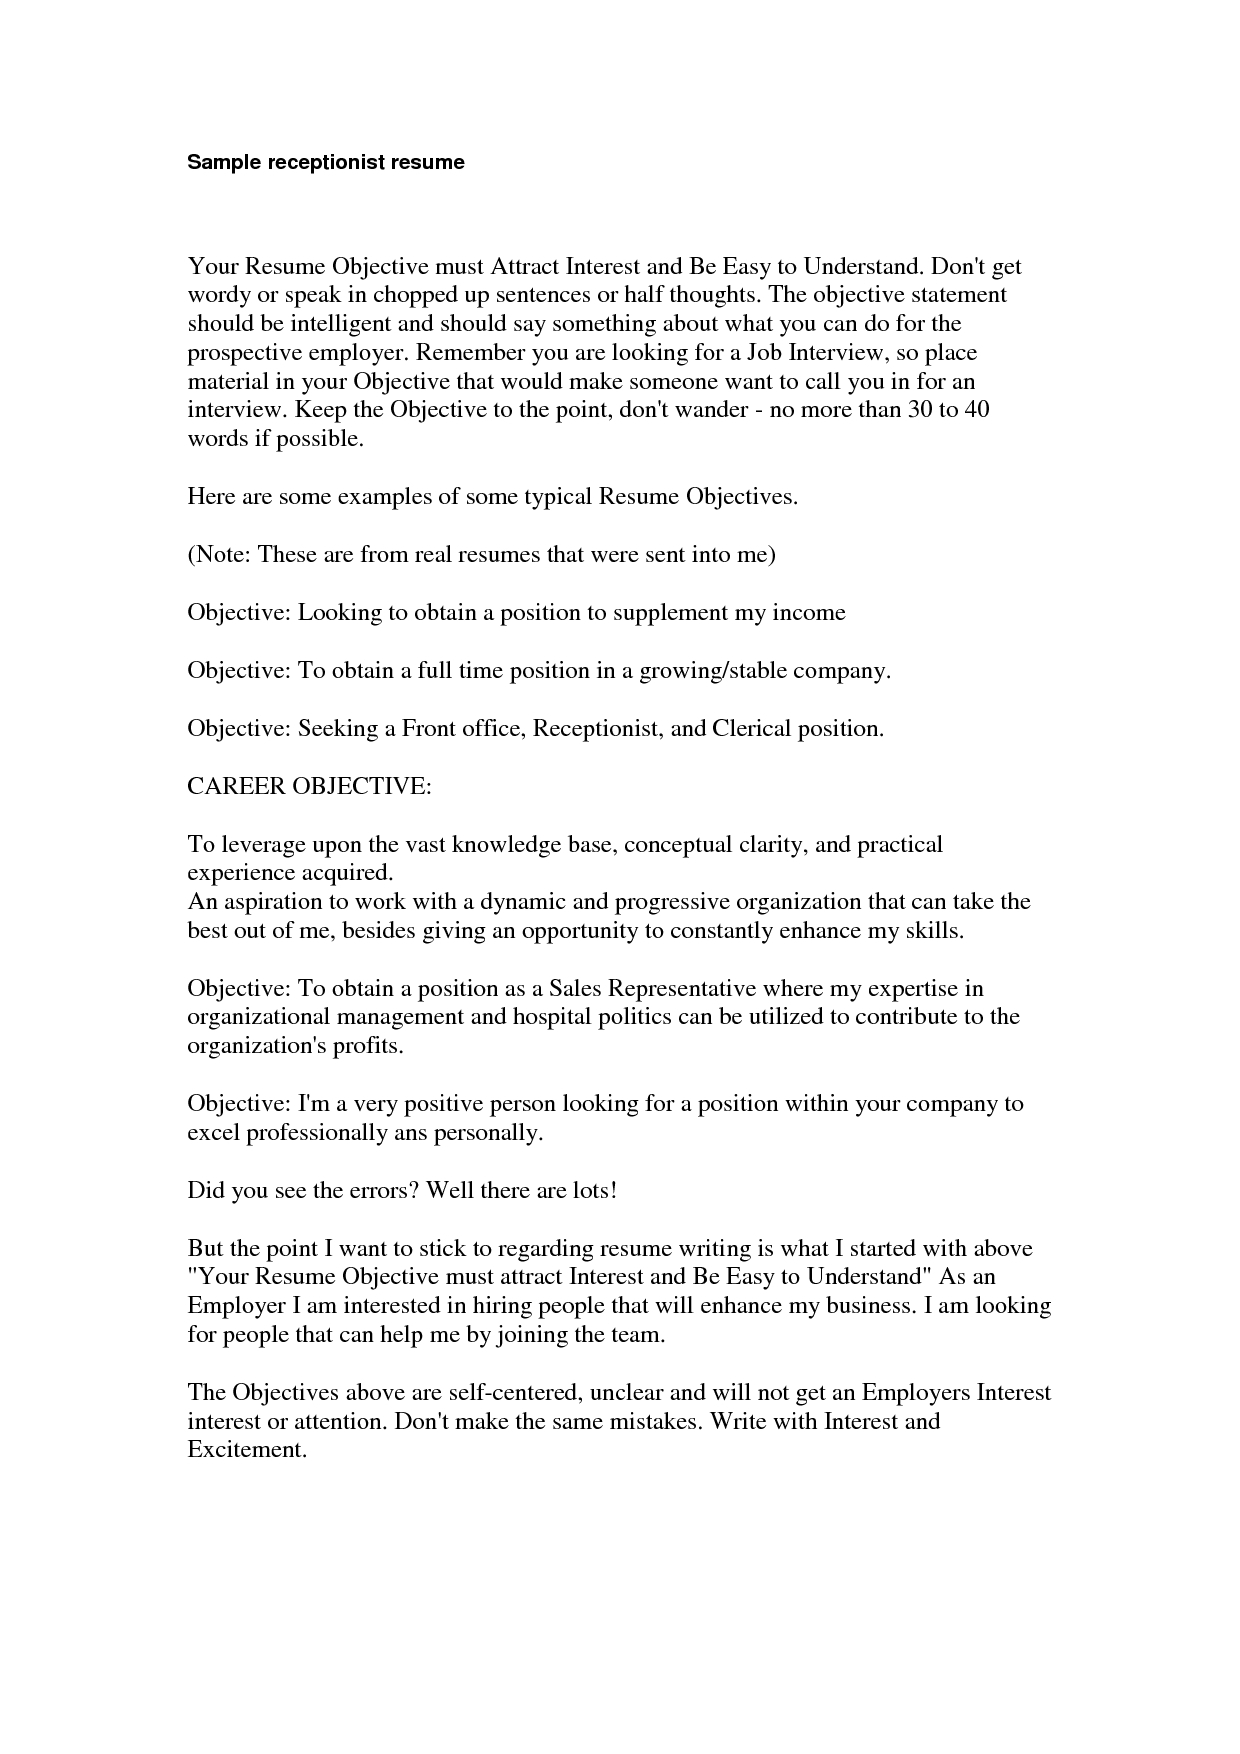 Good Objective For Resume Extraordinary Good Receptionist Resumes For Your Marvellous Design Receptionist Resume Objective 16 Spa Examples We Of Good Receptionist Resumes good objective for resume wikiresume.com